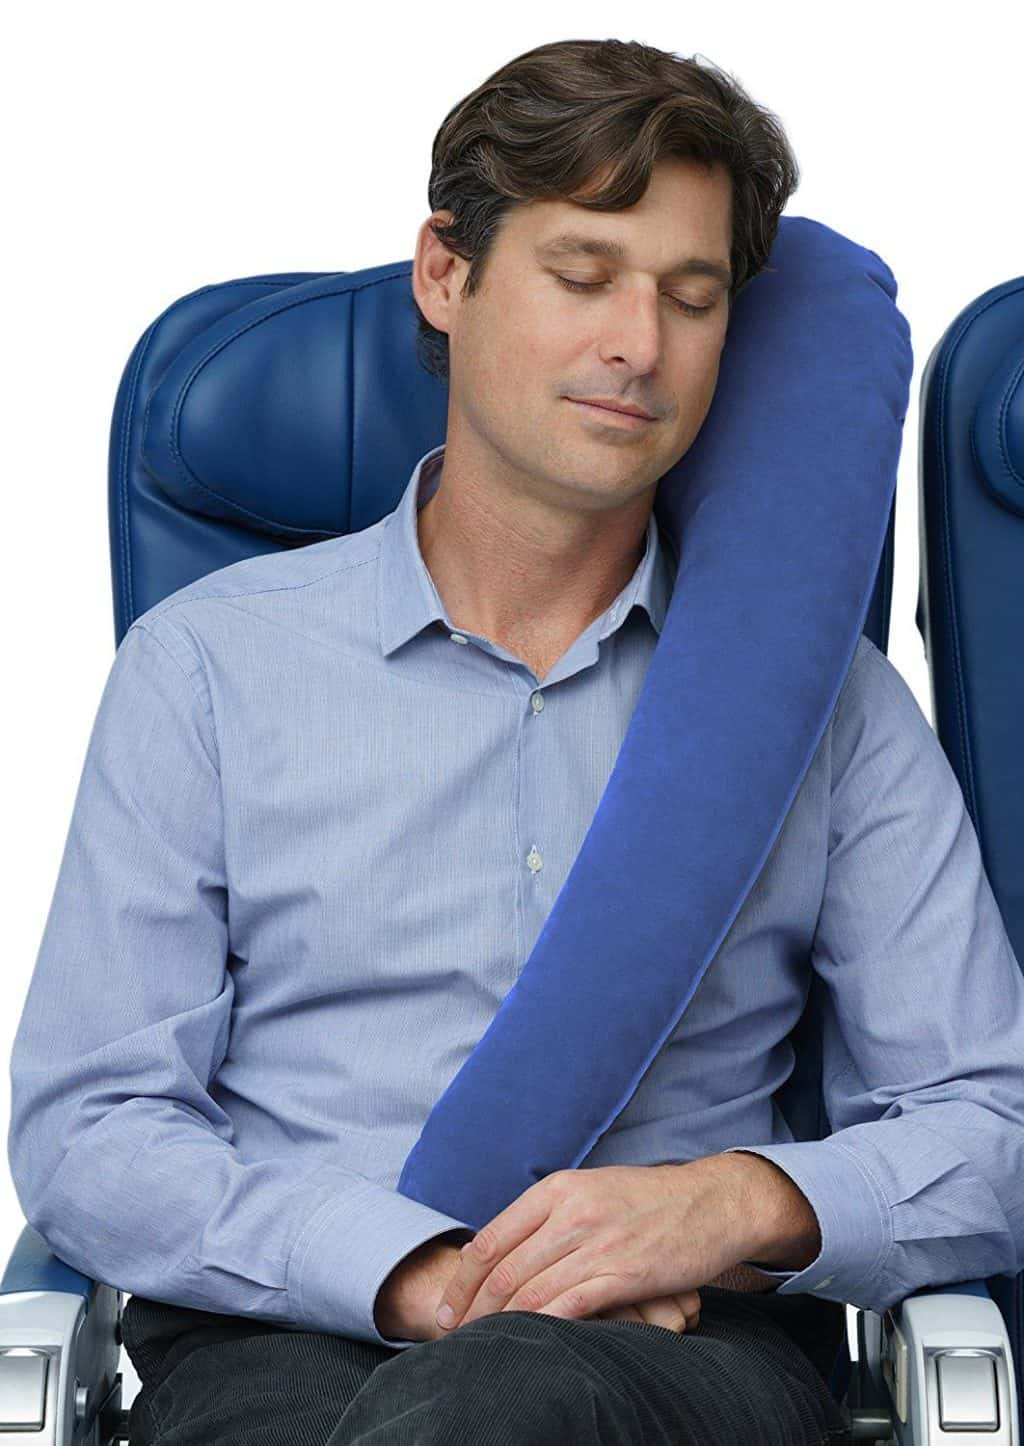 Travelrest Travel Pillow for Airplanes, Cars, Wheelchairs & Home